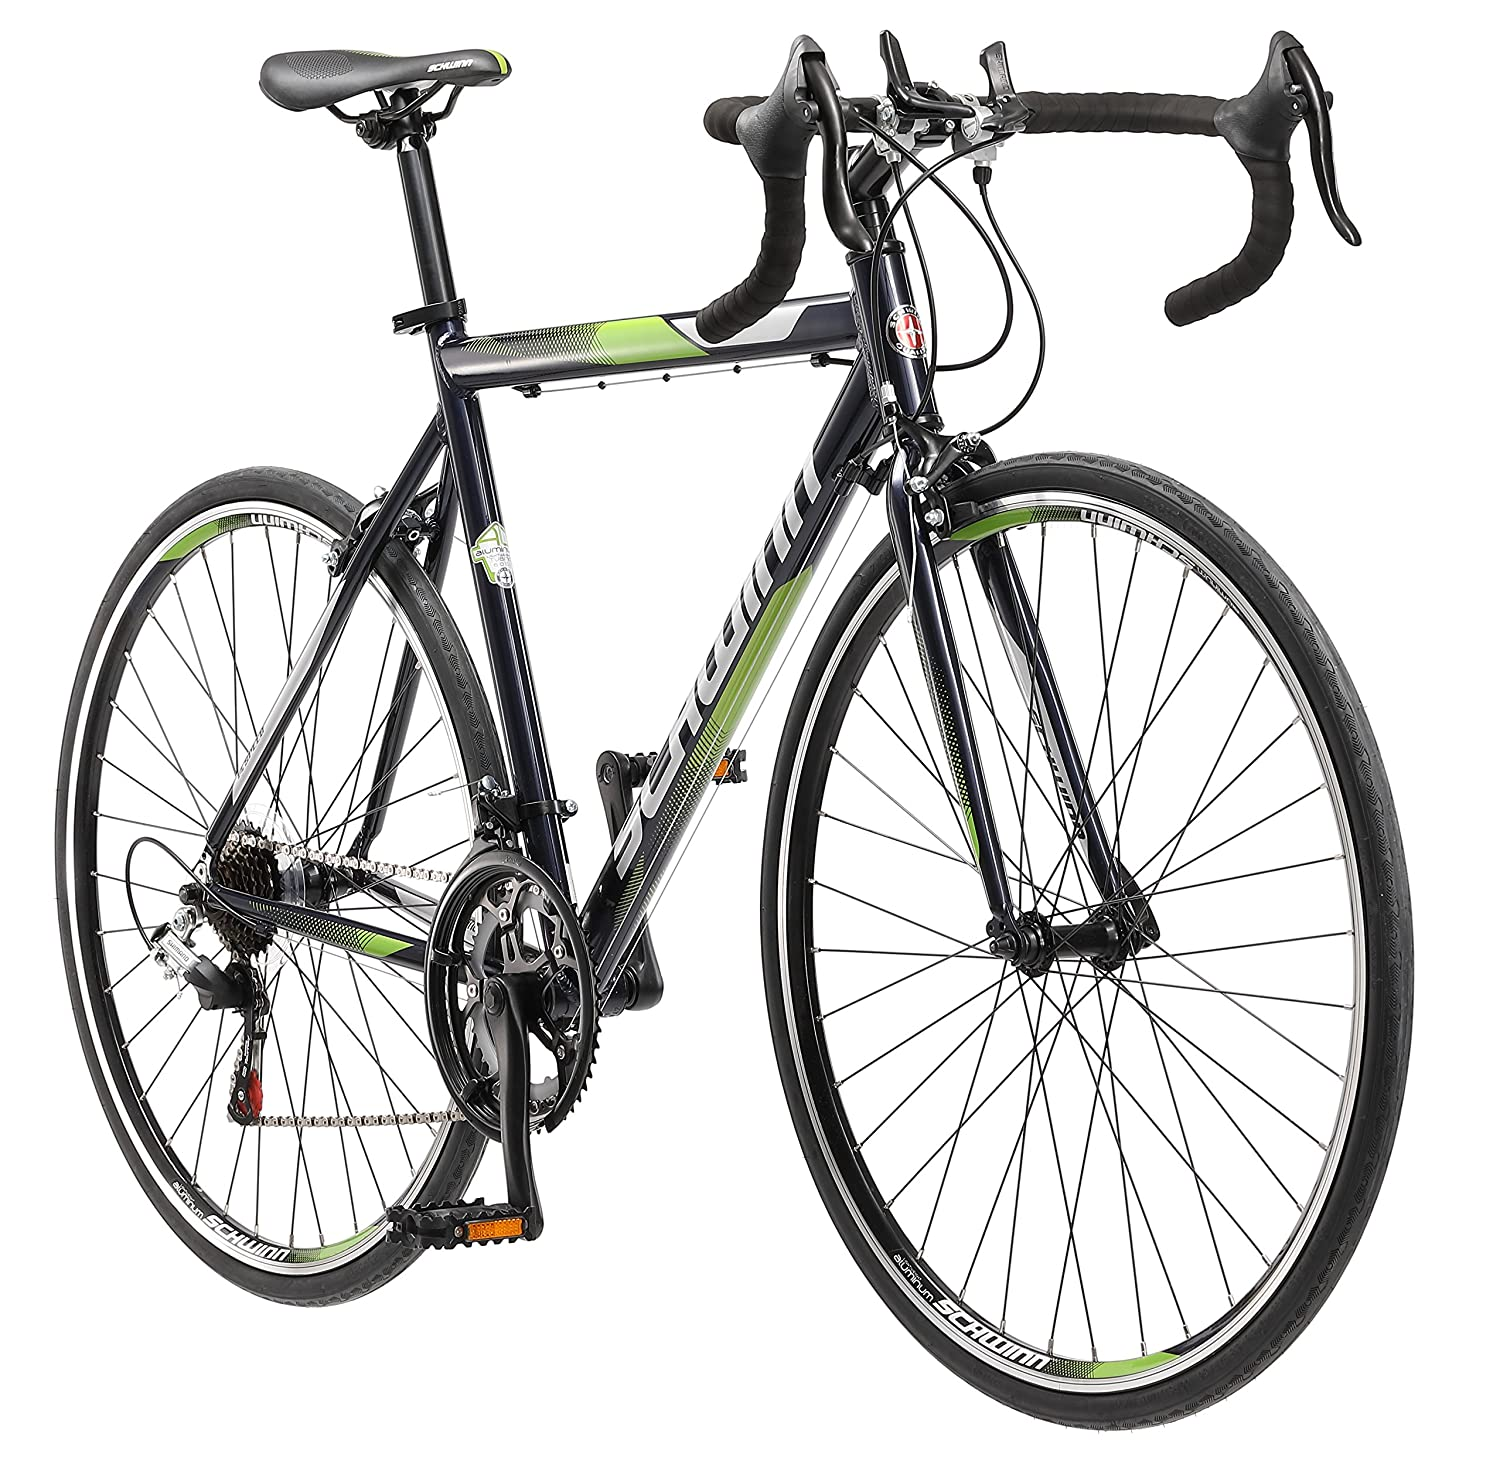 Best Entry-Level Road Bikes of 2019 - Under $500 / $1,000